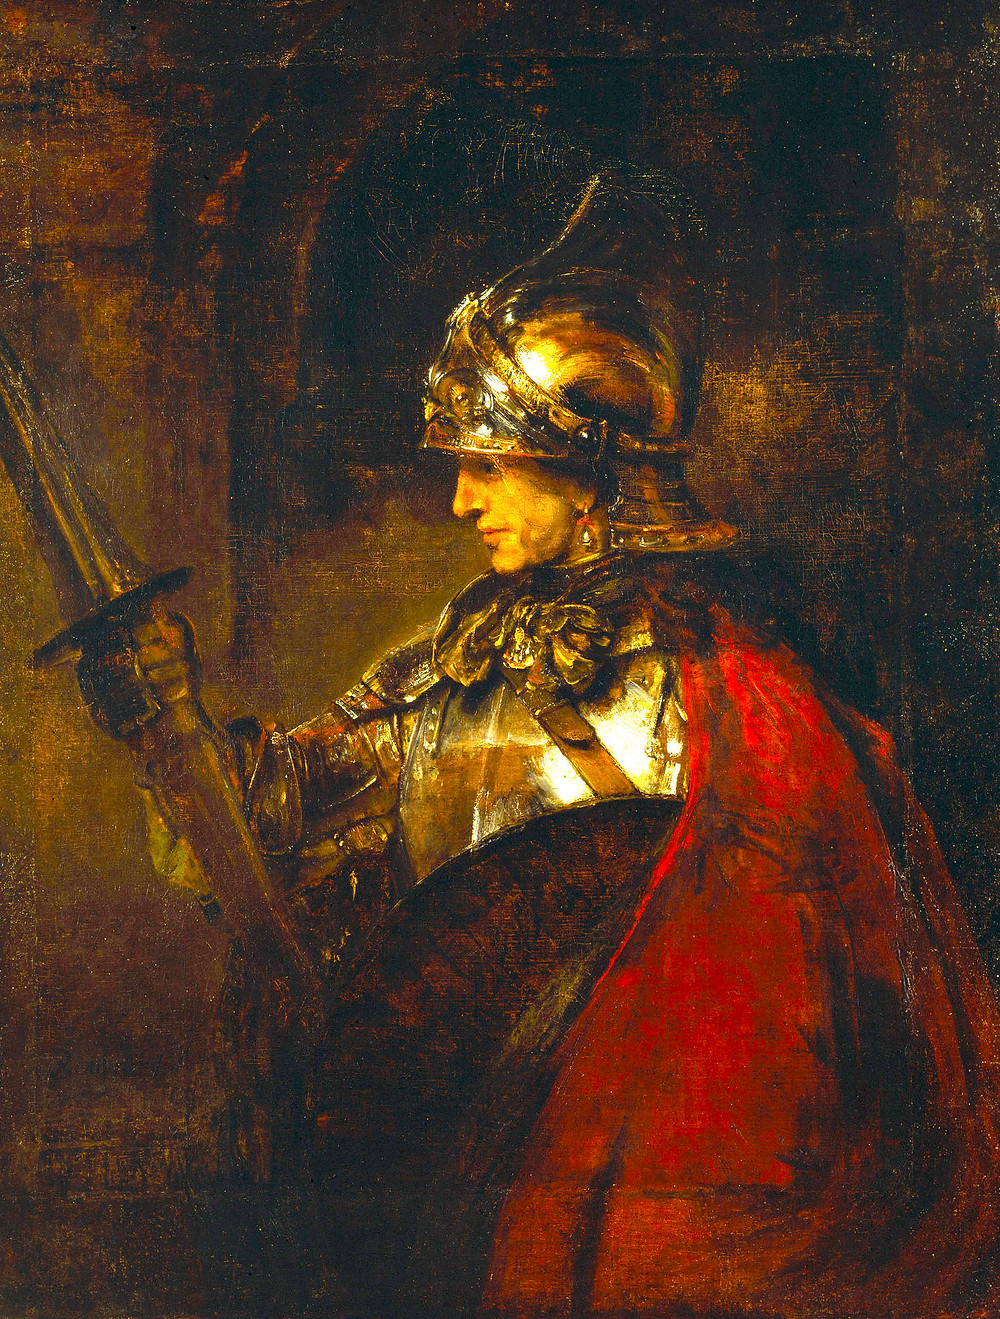 rembrandt_man_in_armour1.jpg